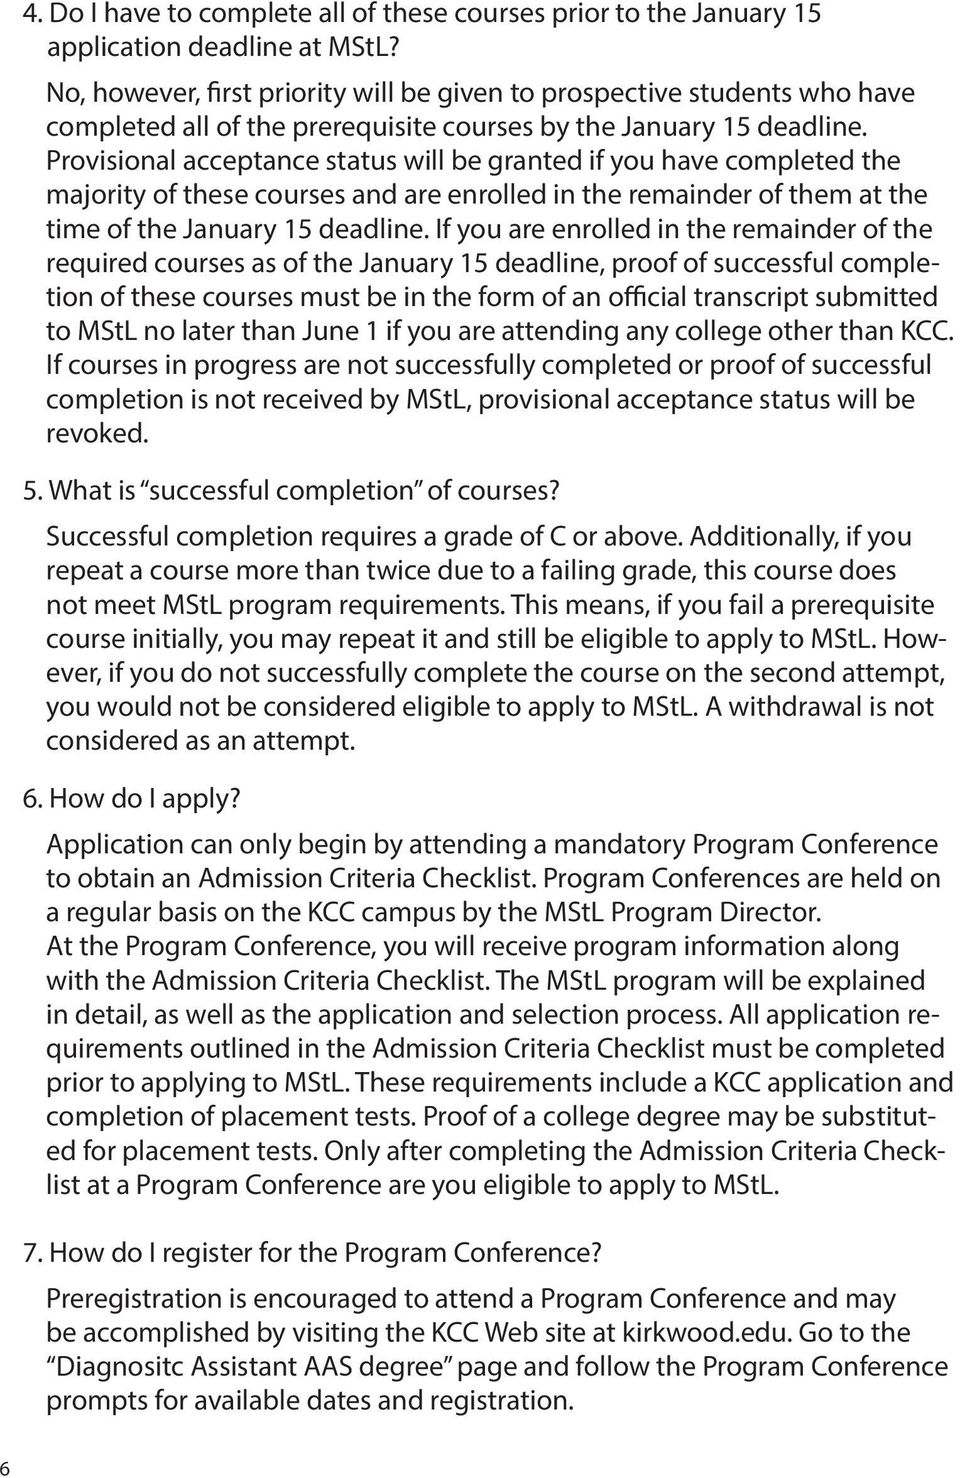 Provisional acceptance status will be granted if you have completed the majority of these courses and are enrolled in the remainder of them at the time of the January 15 deadline.